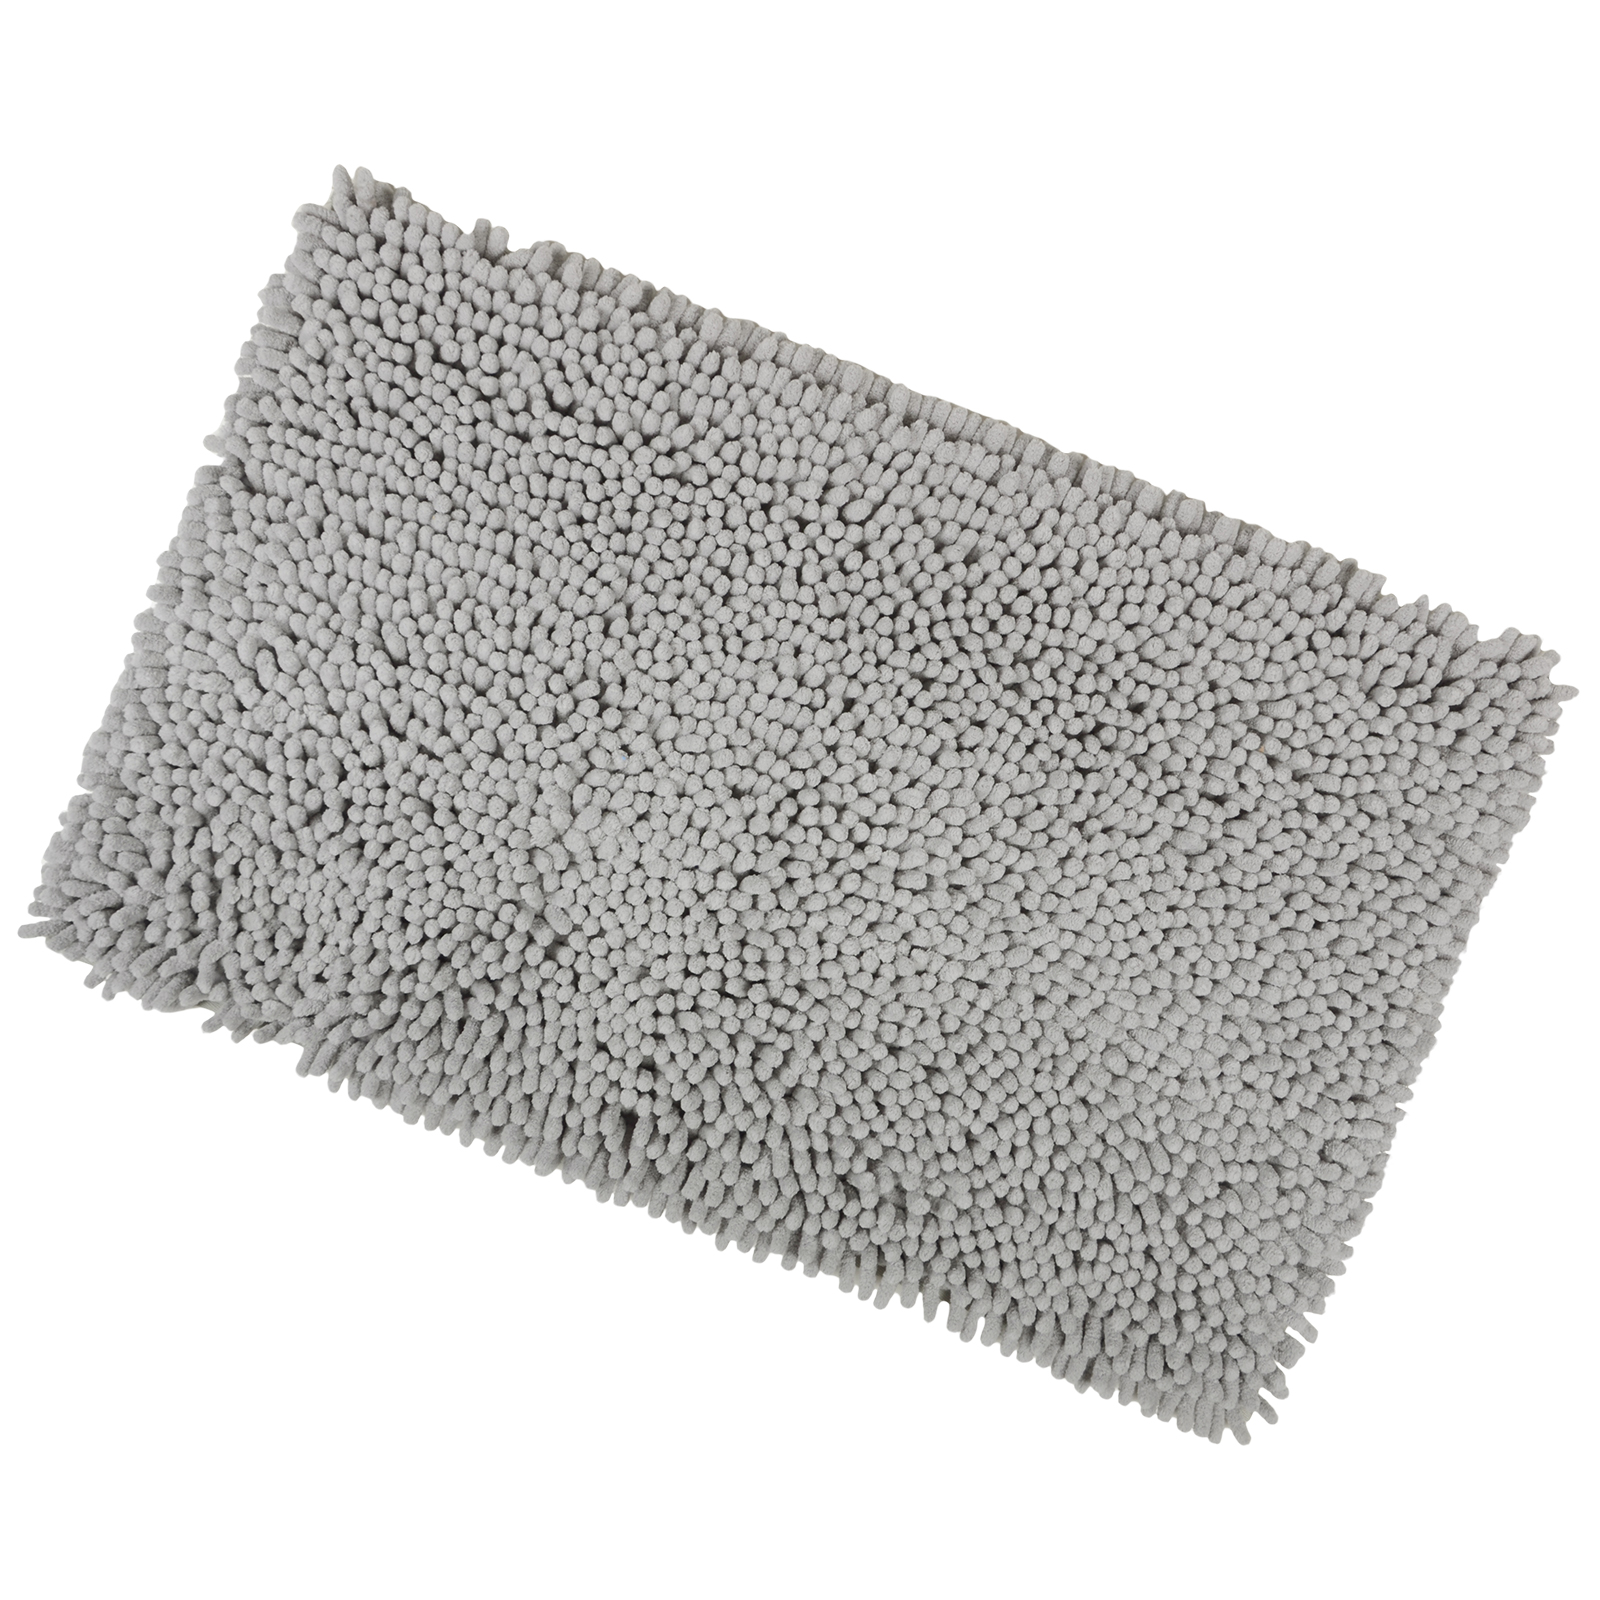 Grey 40x60cm Shaggy Micro Fibre Bath Shower Mat Rug With Non Sliper Backing